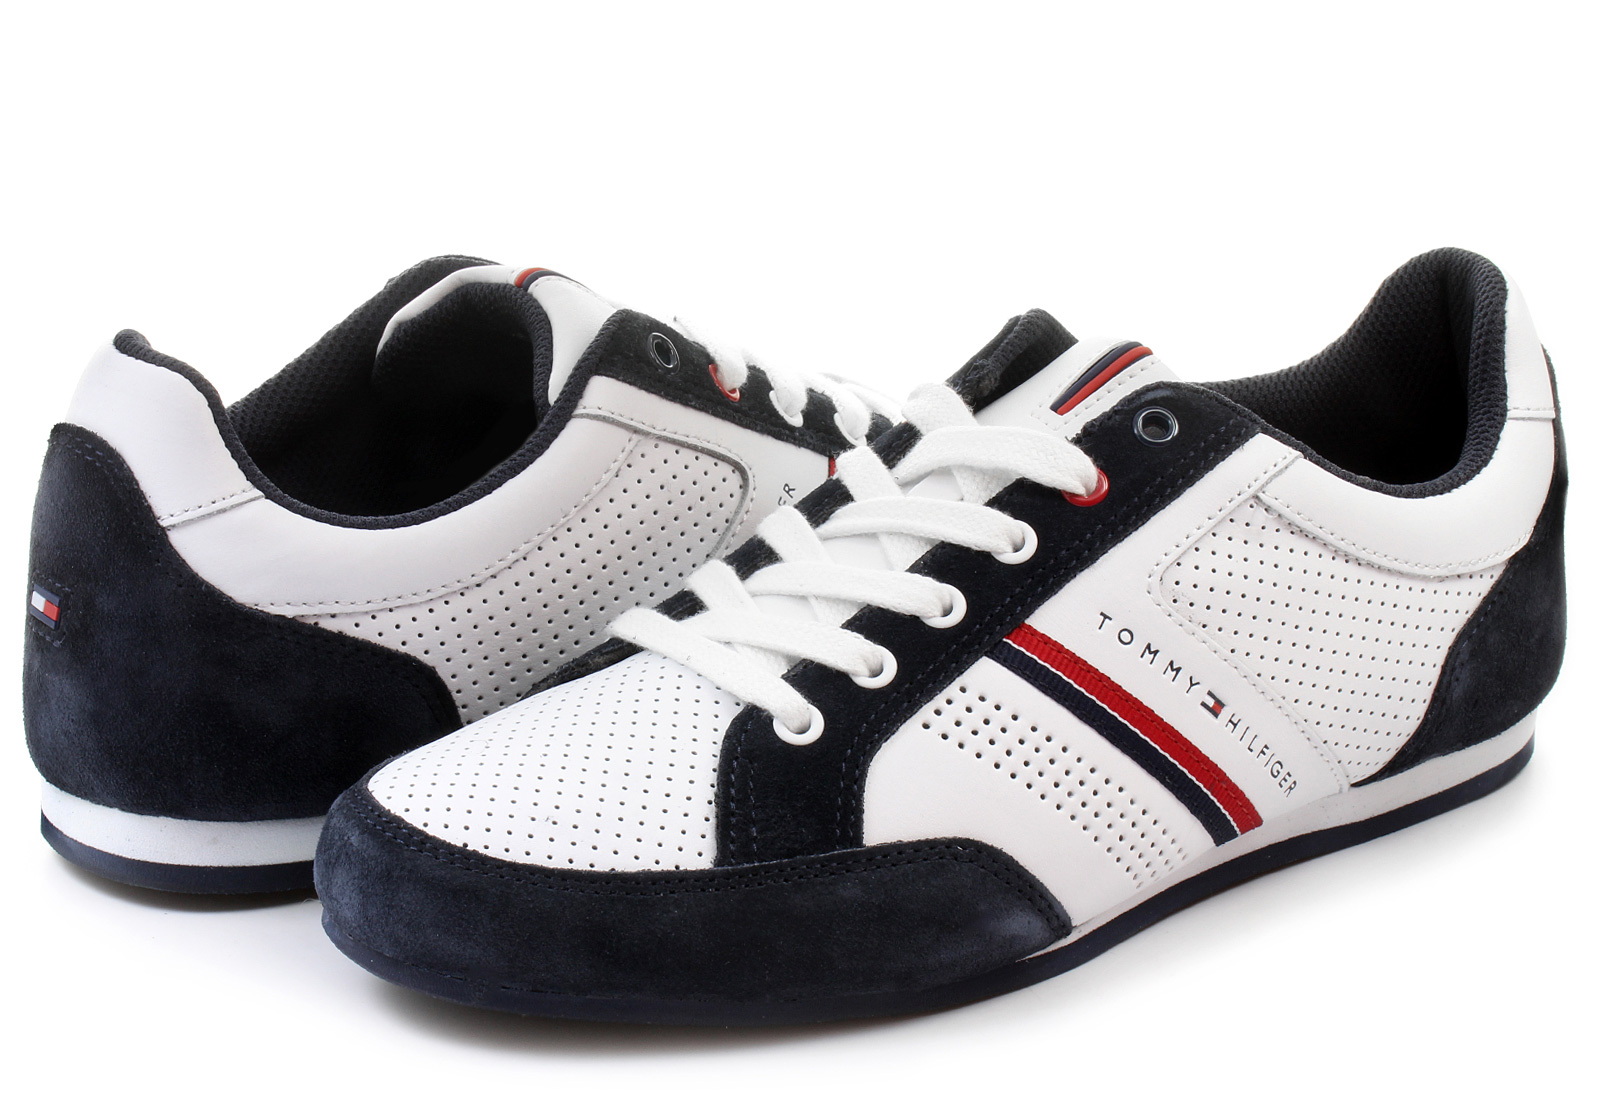 tommy hilfiger shoes ross 3a 14s 6982 403 online shop for sneakers shoes and boots. Black Bedroom Furniture Sets. Home Design Ideas